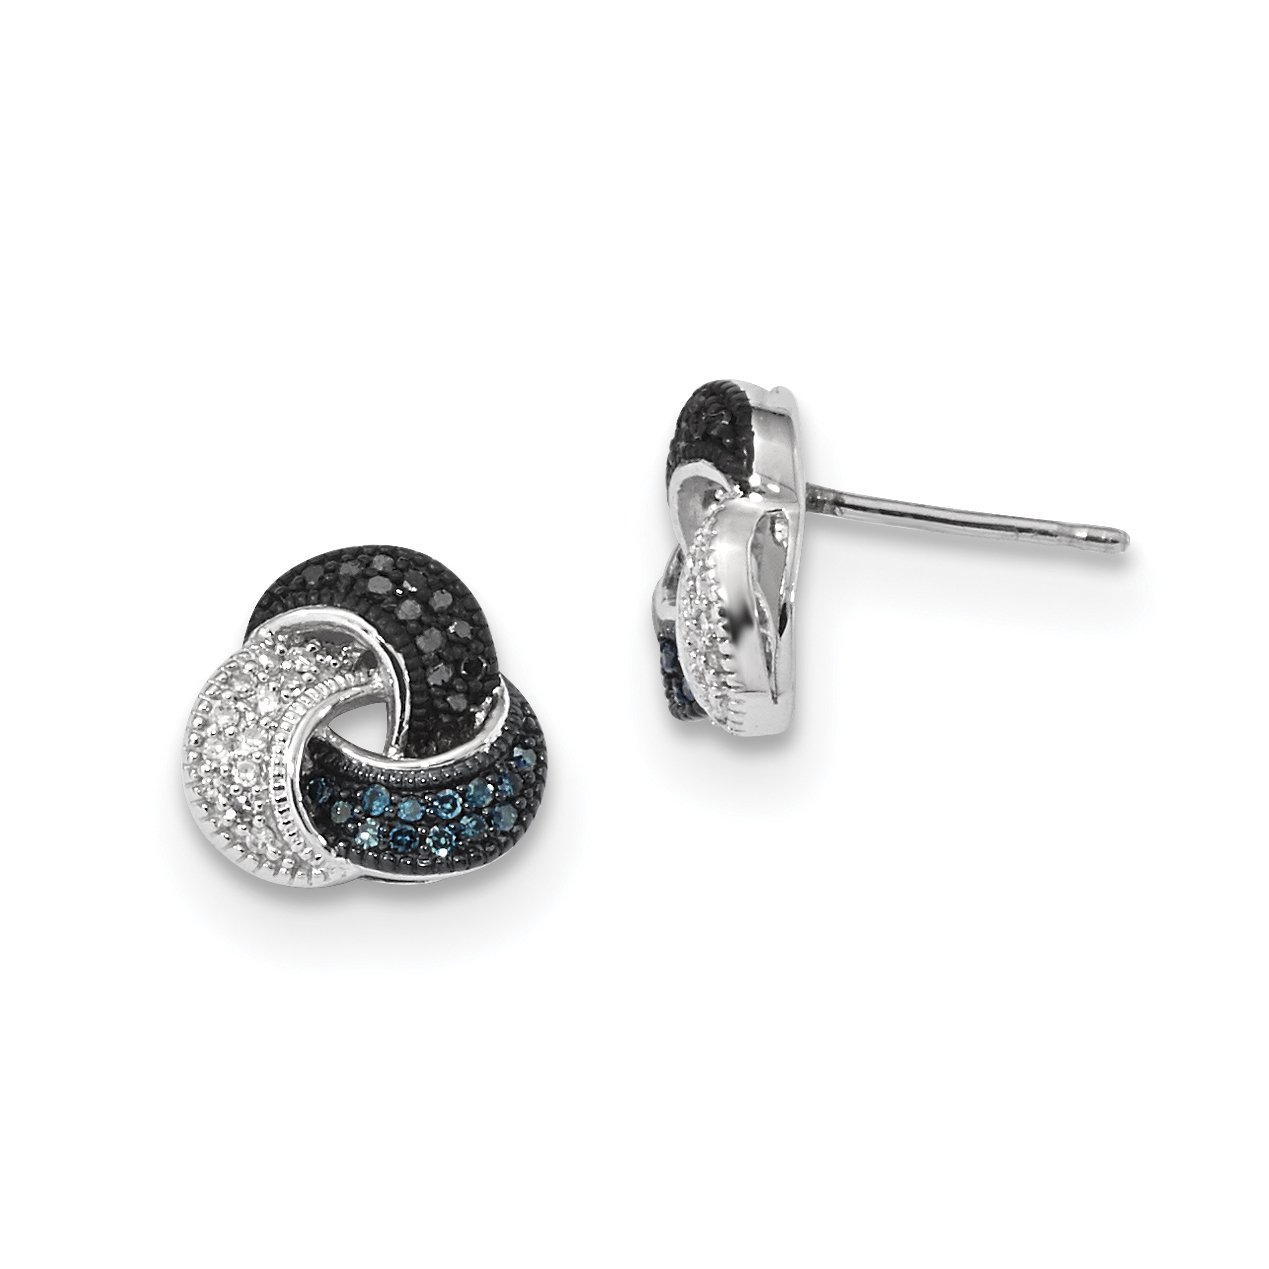 ICE CARATS 925 Sterling Silver Blue/black/white Diamond Post Stud Ball Button Earrings